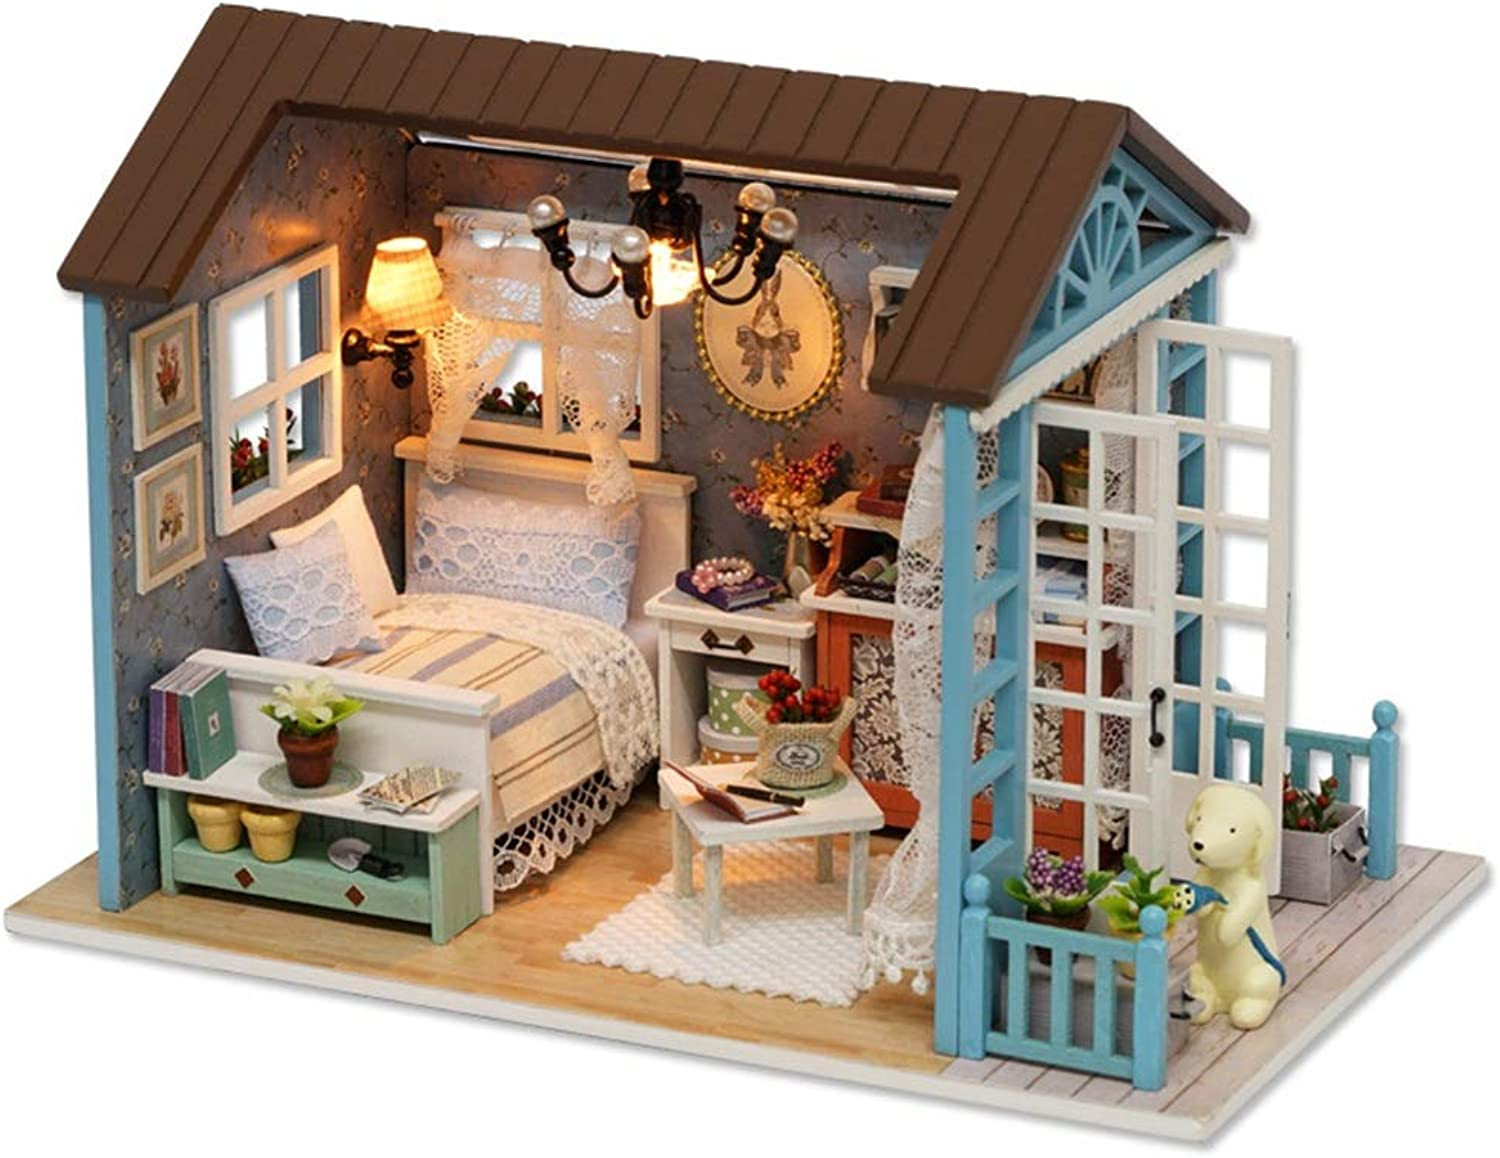 Maybesky Educational Toy 3D Puzzles Handmade Miniature Dollhouse DIY Kit Dollhouses Accessories Dolls Houses With Furniture & LED Best Birthday Gifts For Women And Girls Birthday Gift For Boys Girls